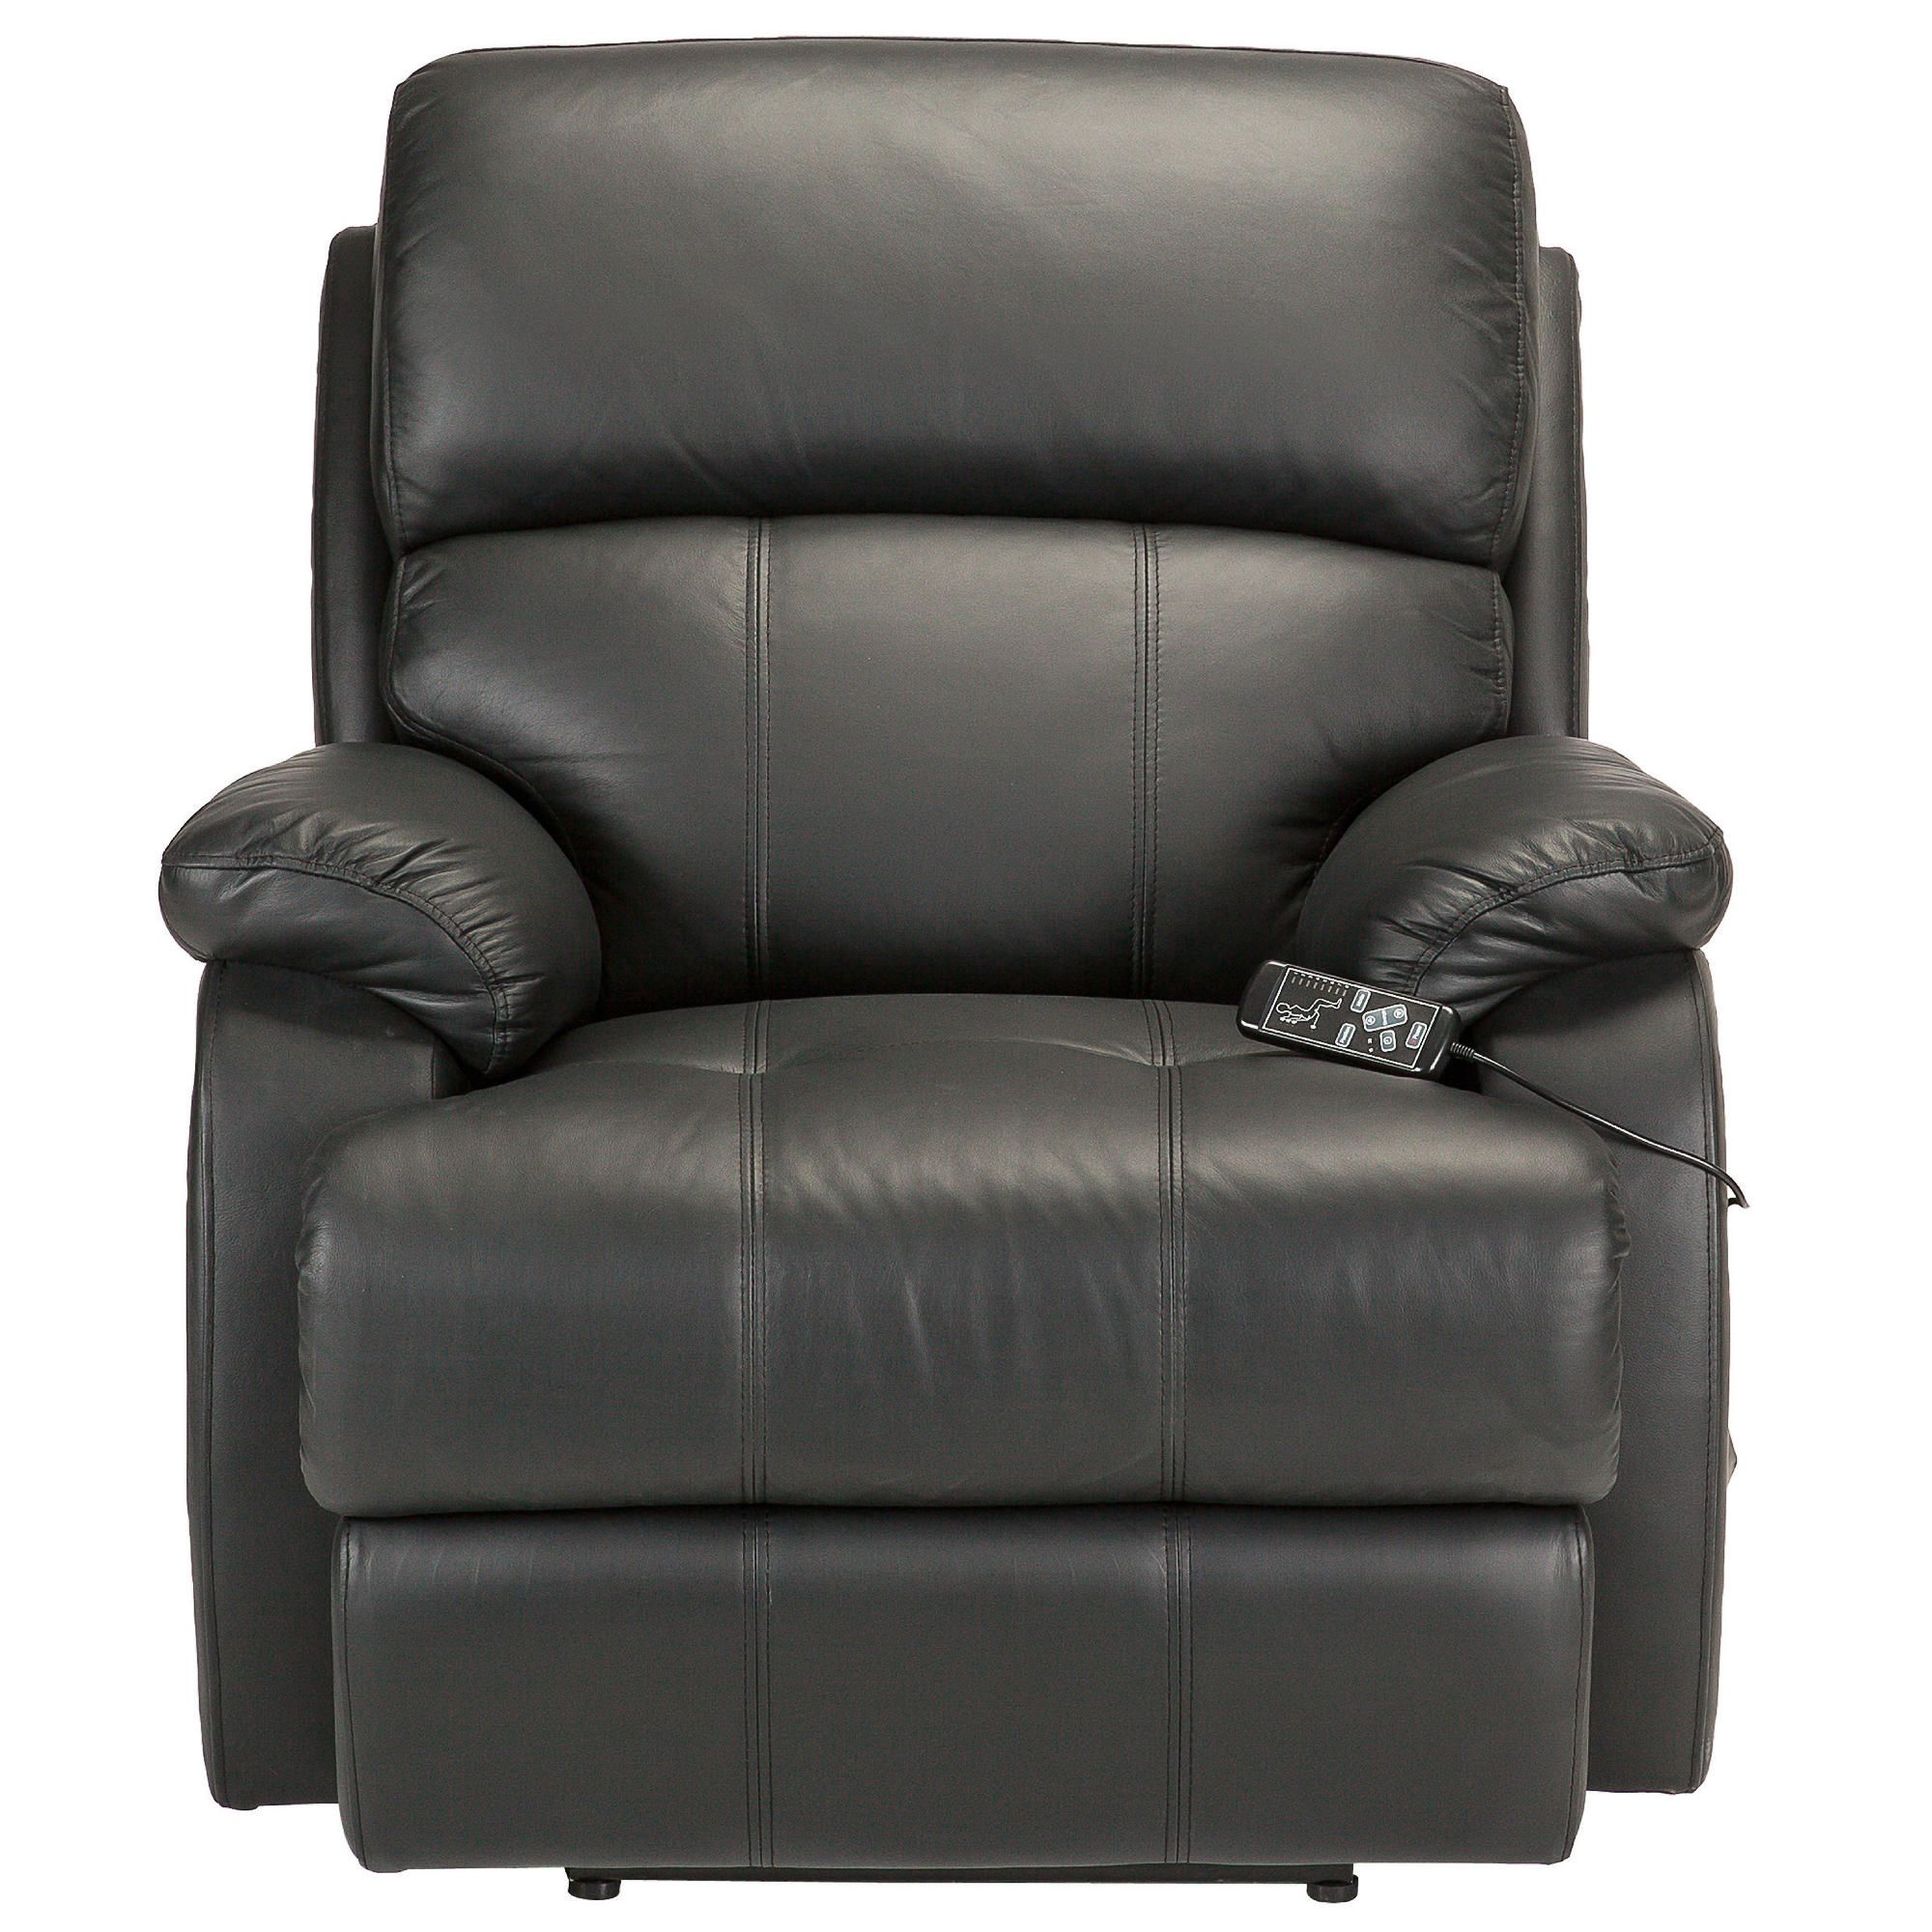 Massage Leather Recliner Chair Black at Tesco Direct